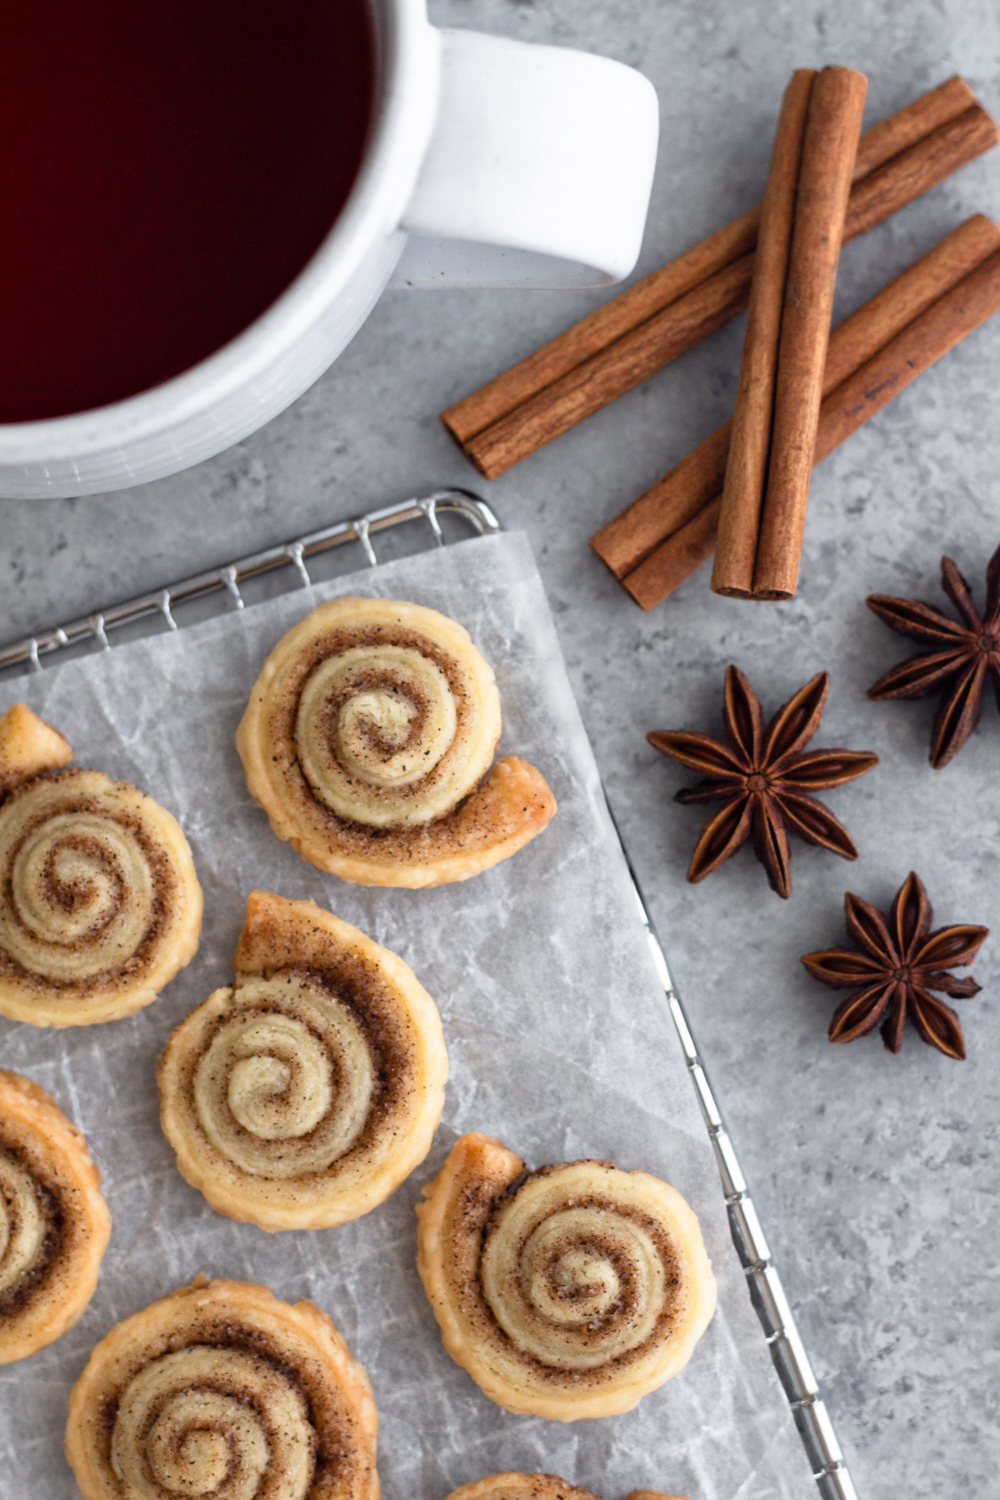 overhead view of pie crust cookies on a cooling rack with cinnamon sticks, star anise, and a mug of tea